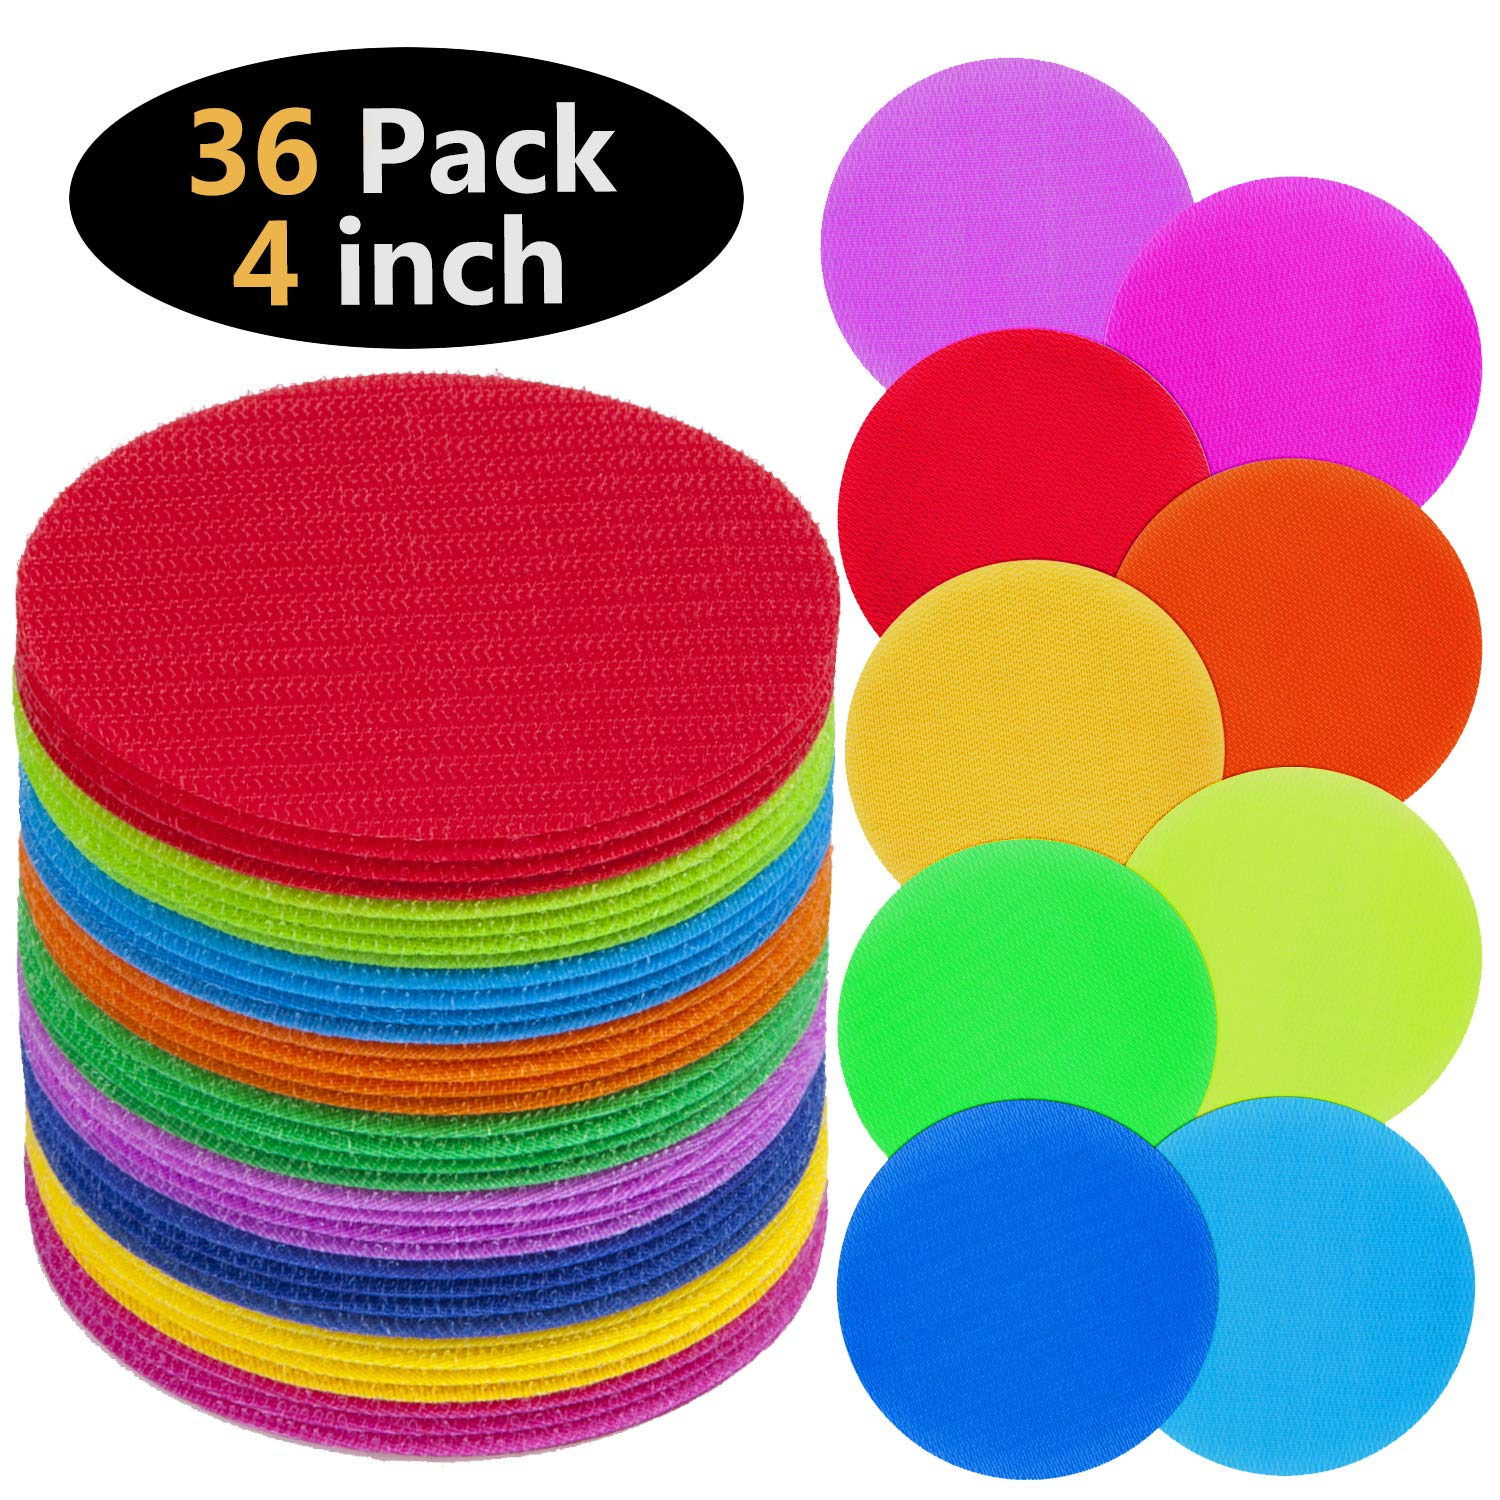 TABIGER Carpet Markers 36 PCS 9 Colors Sitting Floor Spots Hook and Loop Circles Dots for Teachers and Children in Kindergarten and Preschool Classrooms with Storage Bag by Tabiger